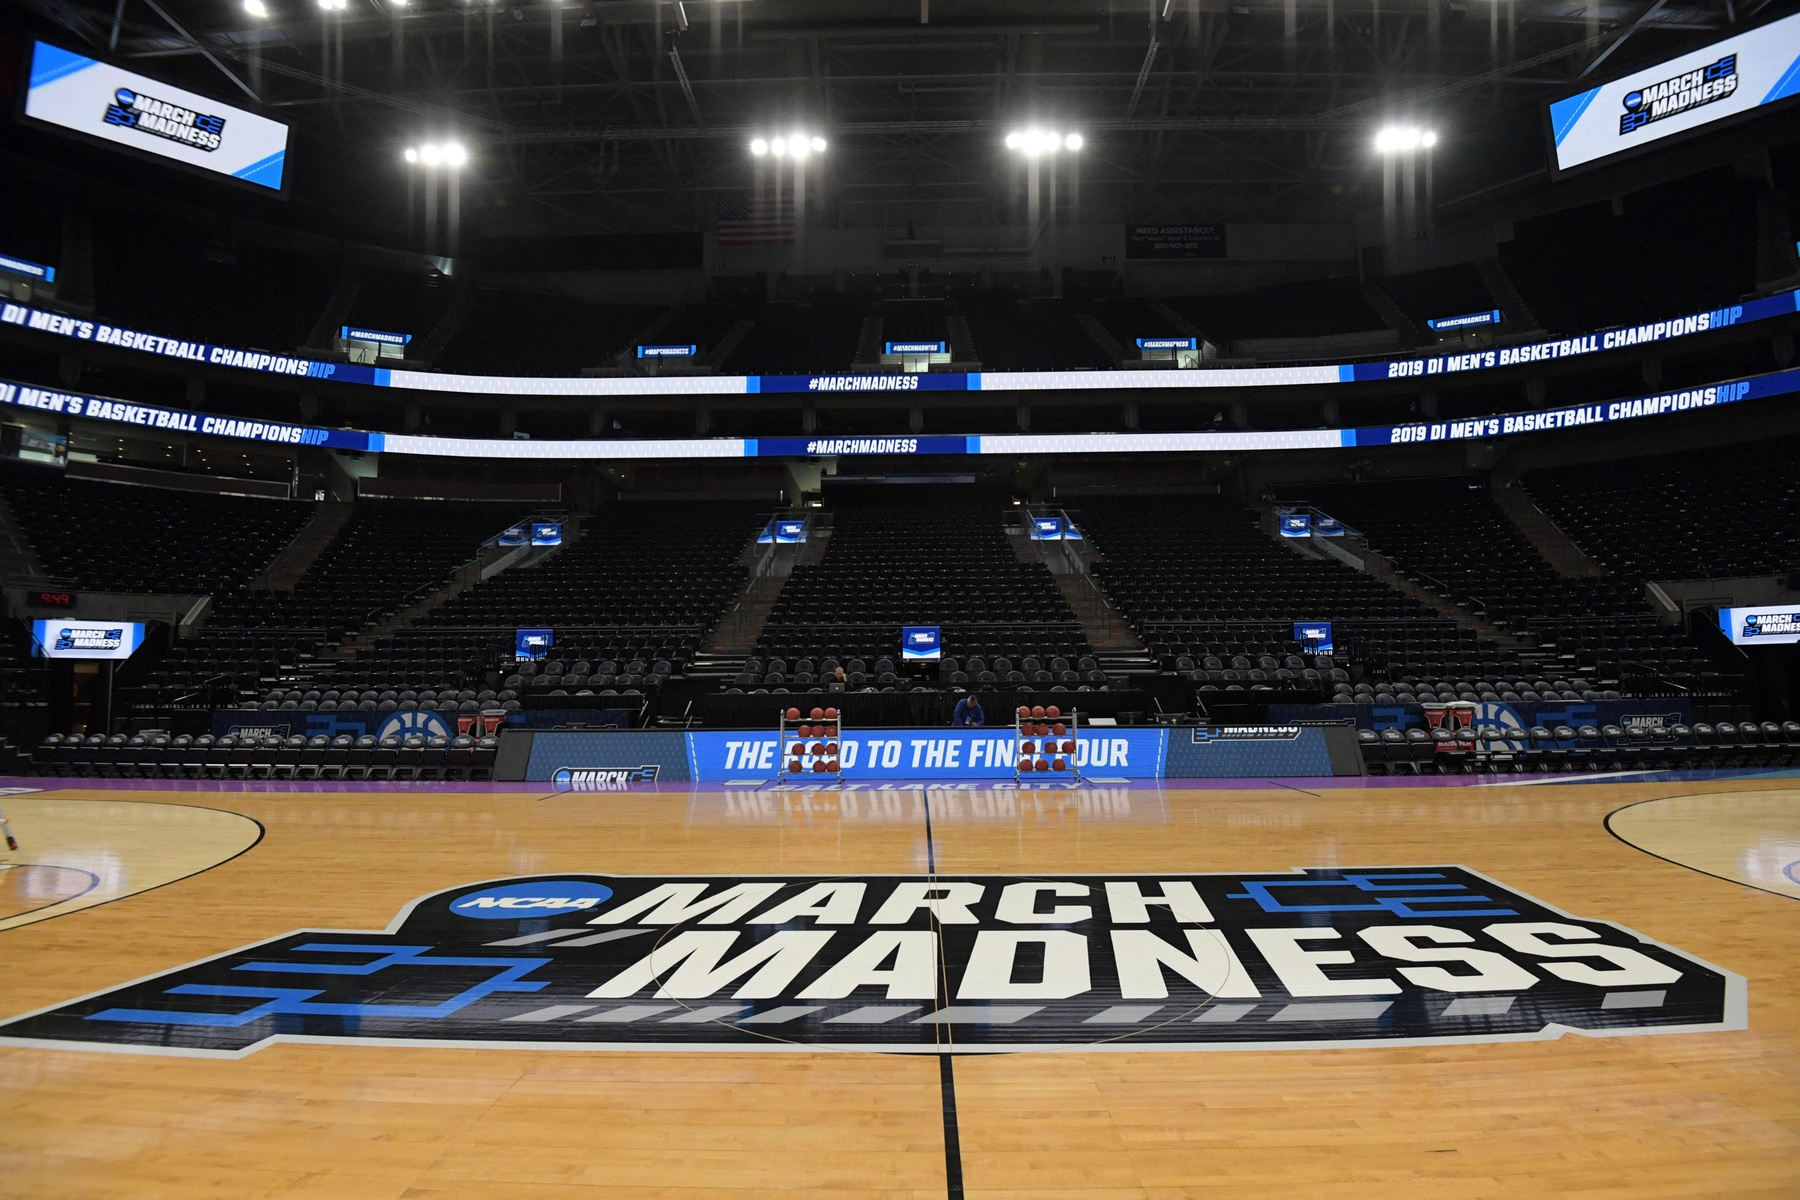 CBS, Turner announce game windows for 2020 NCAA Tournament - Awful Announcing